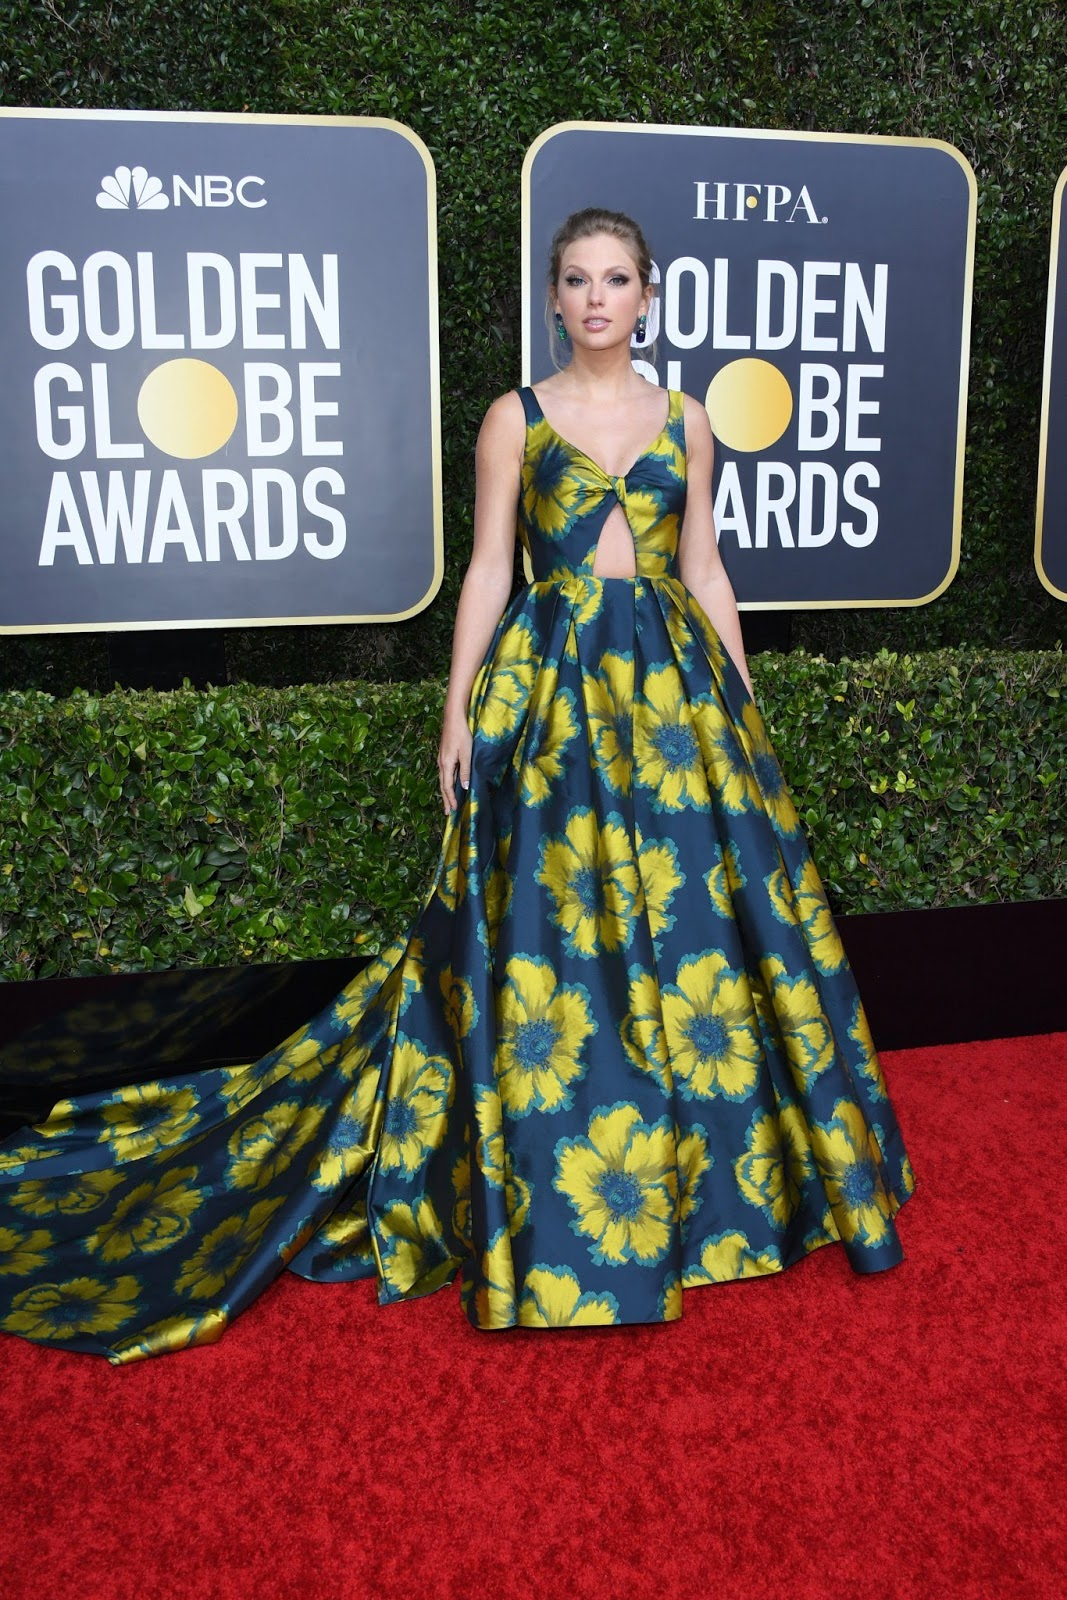 Taylor Swift Looks Gorgeous in a Massive Floral Dress at the 2020 Golden Globes